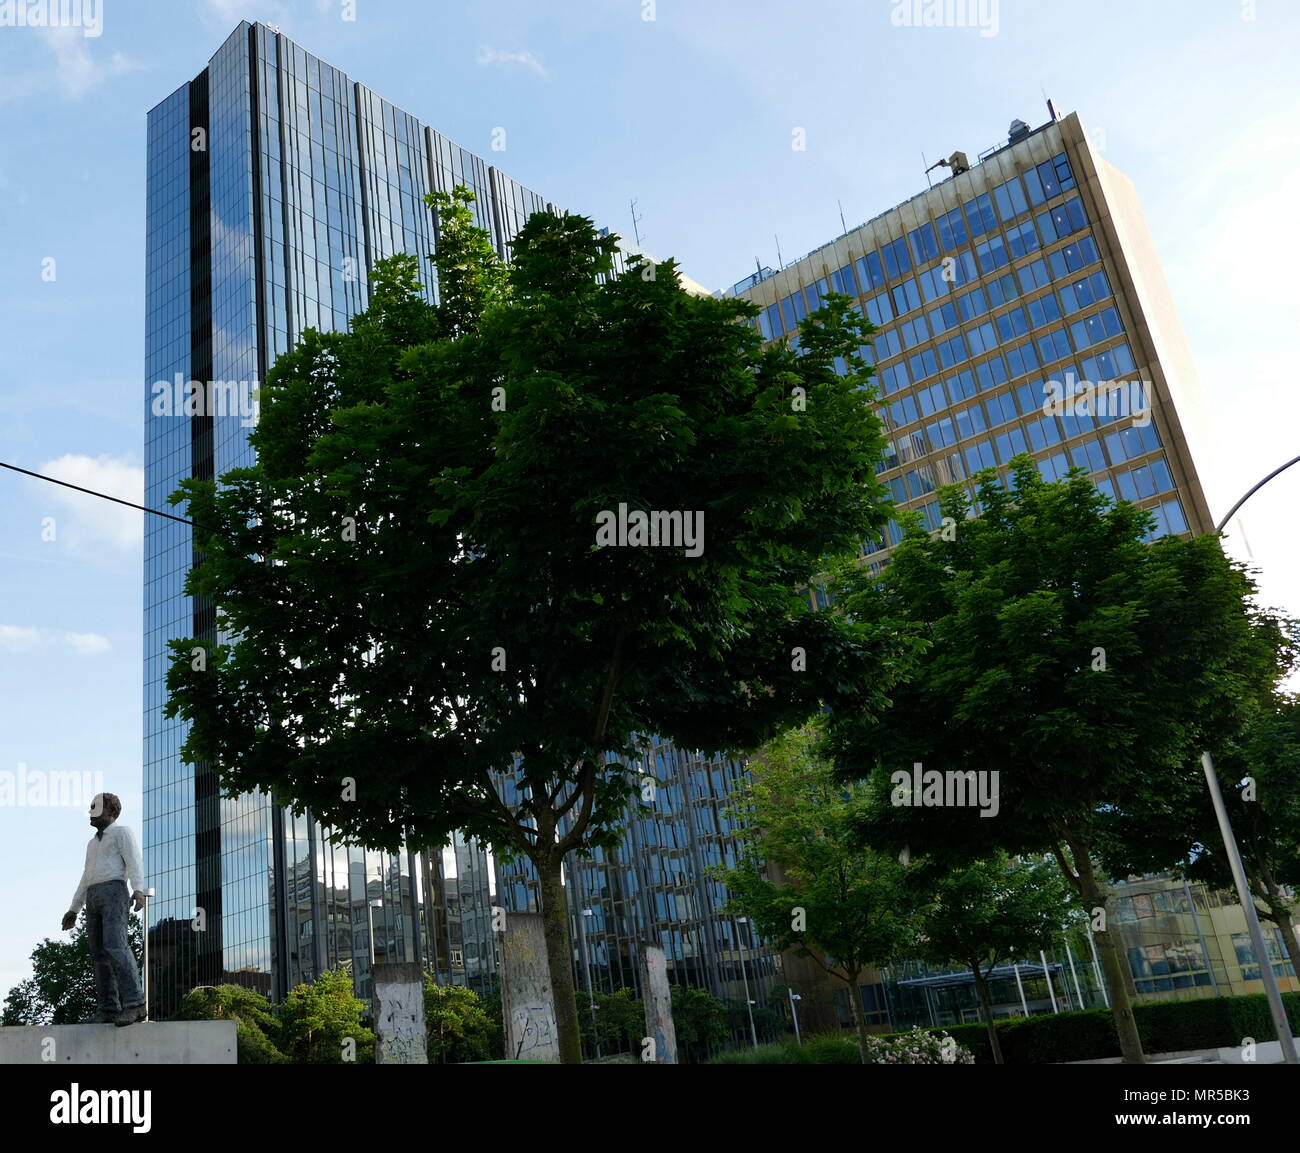 Photograph of the Headquarters of Axel Springer International, Berlin, Germany. Axel Springer SE is one of the largest digital publishing houses in Europe, with numerous multimedia news brands, such as BILD, WELT, and FAKT and more than 15,000 employees - Stock Image